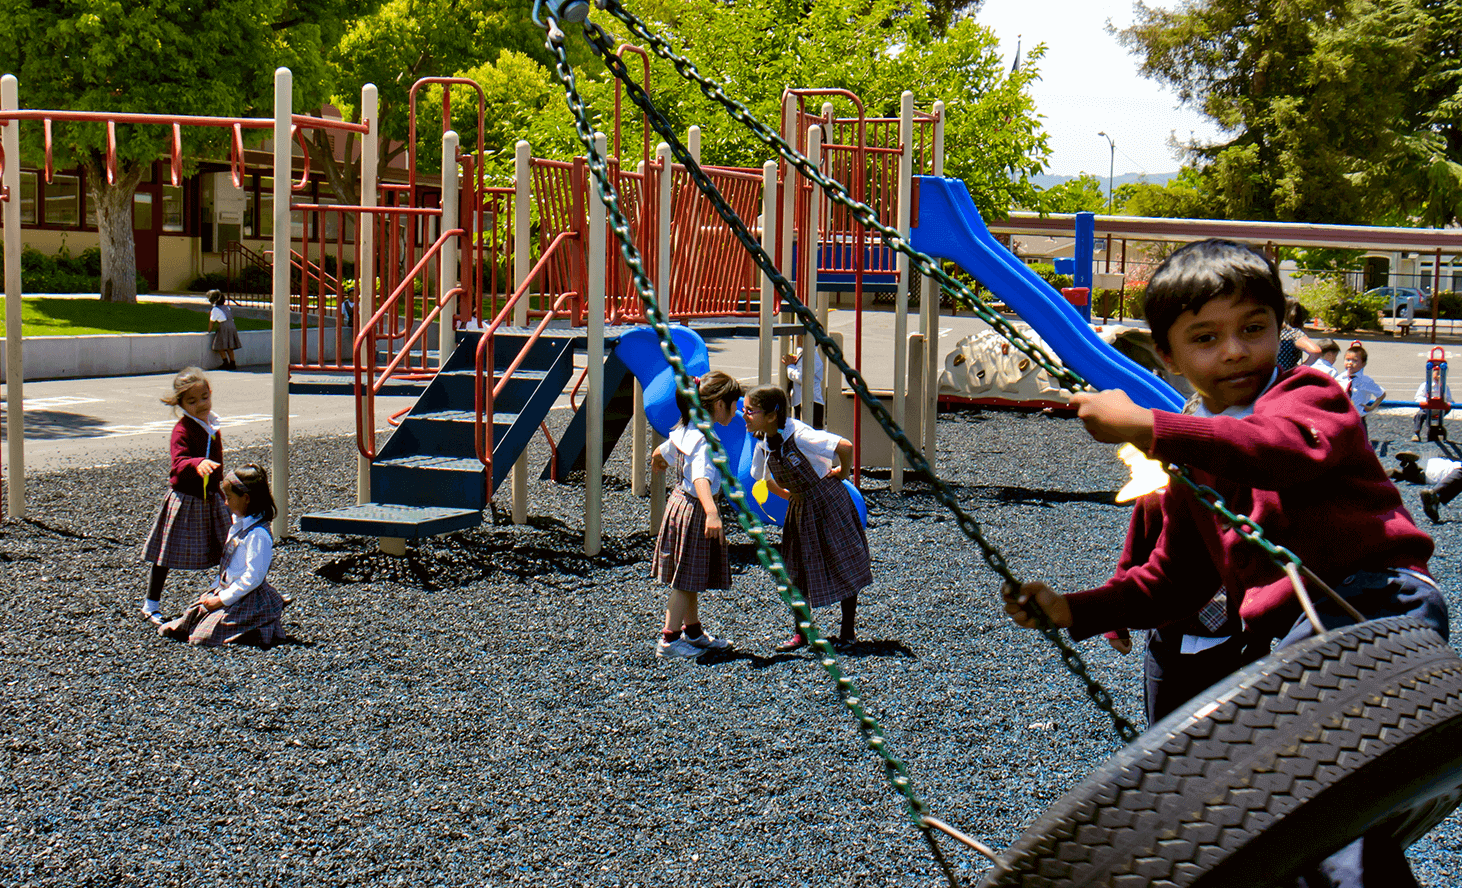 Playground Fun | Challenger School - Strawberry Park | Private School In San Jose, California